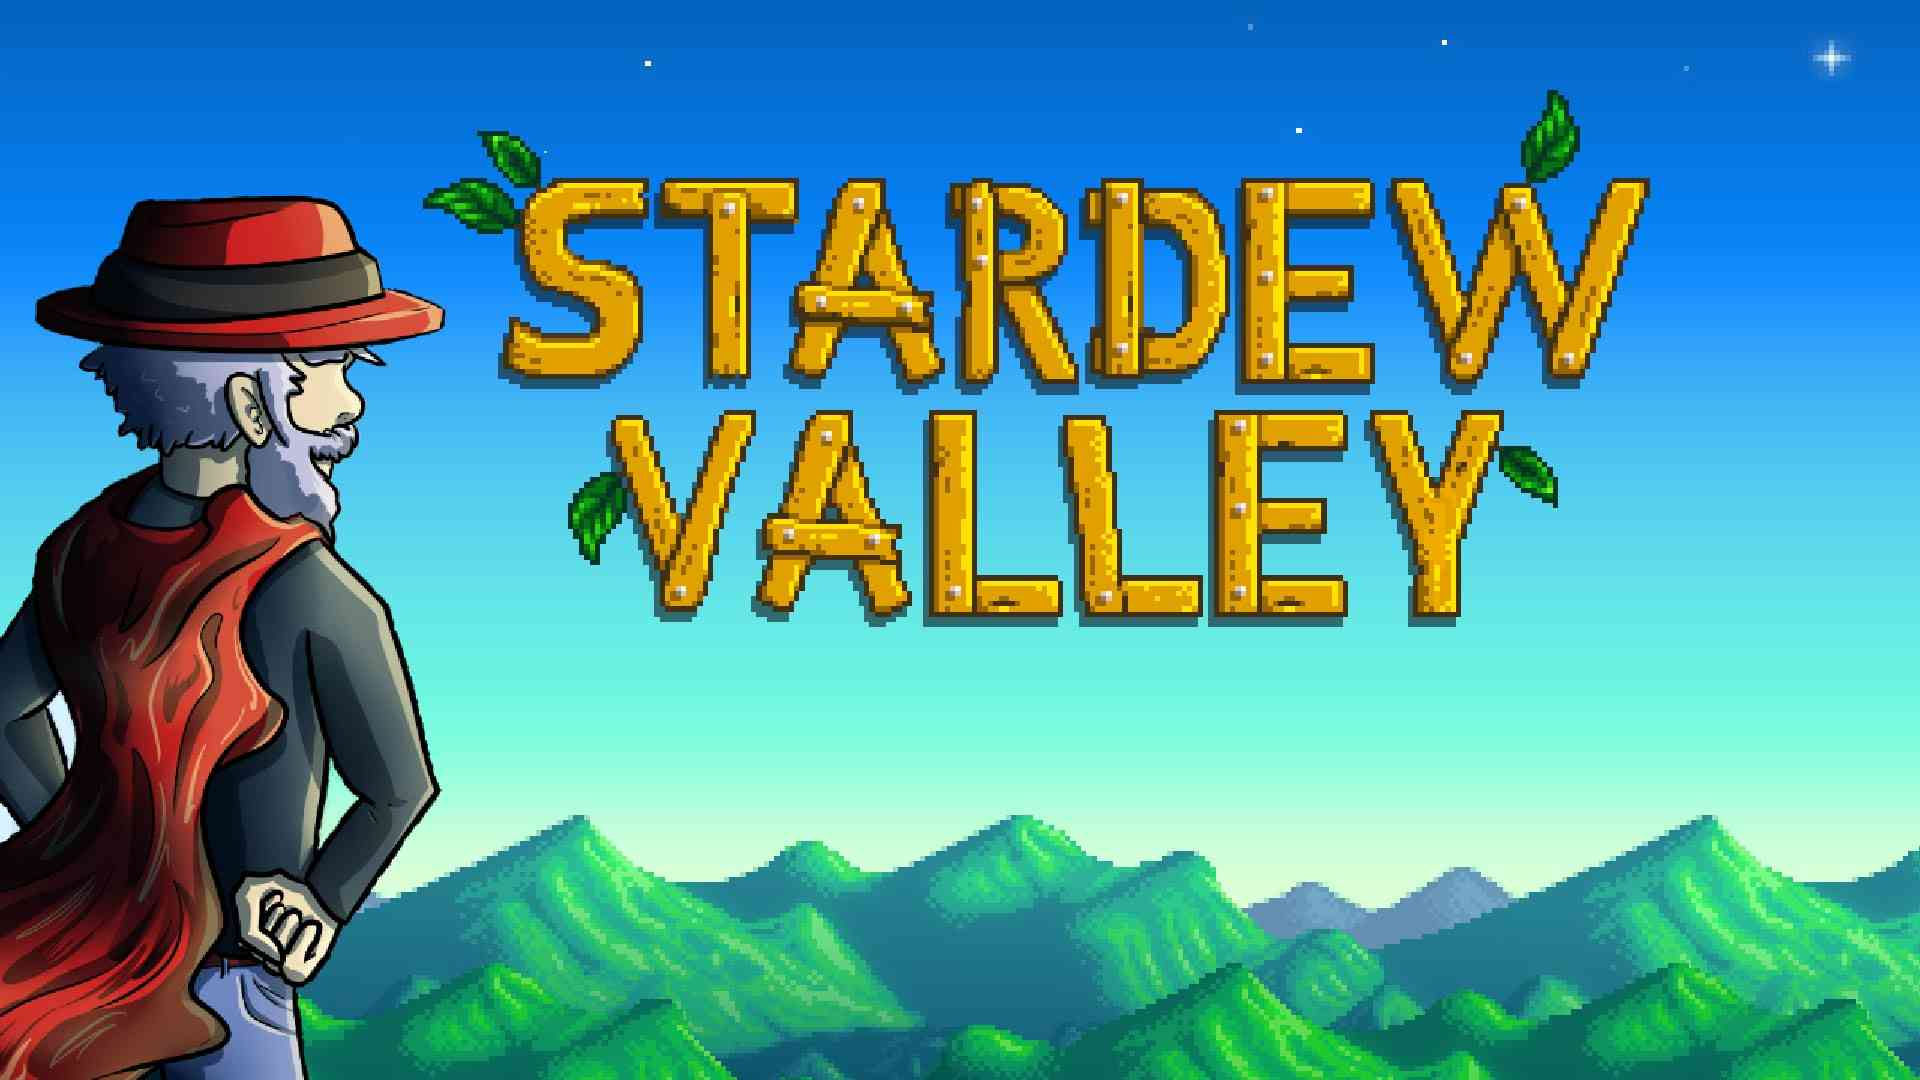 Funny Peach Stardew Valley Finally...